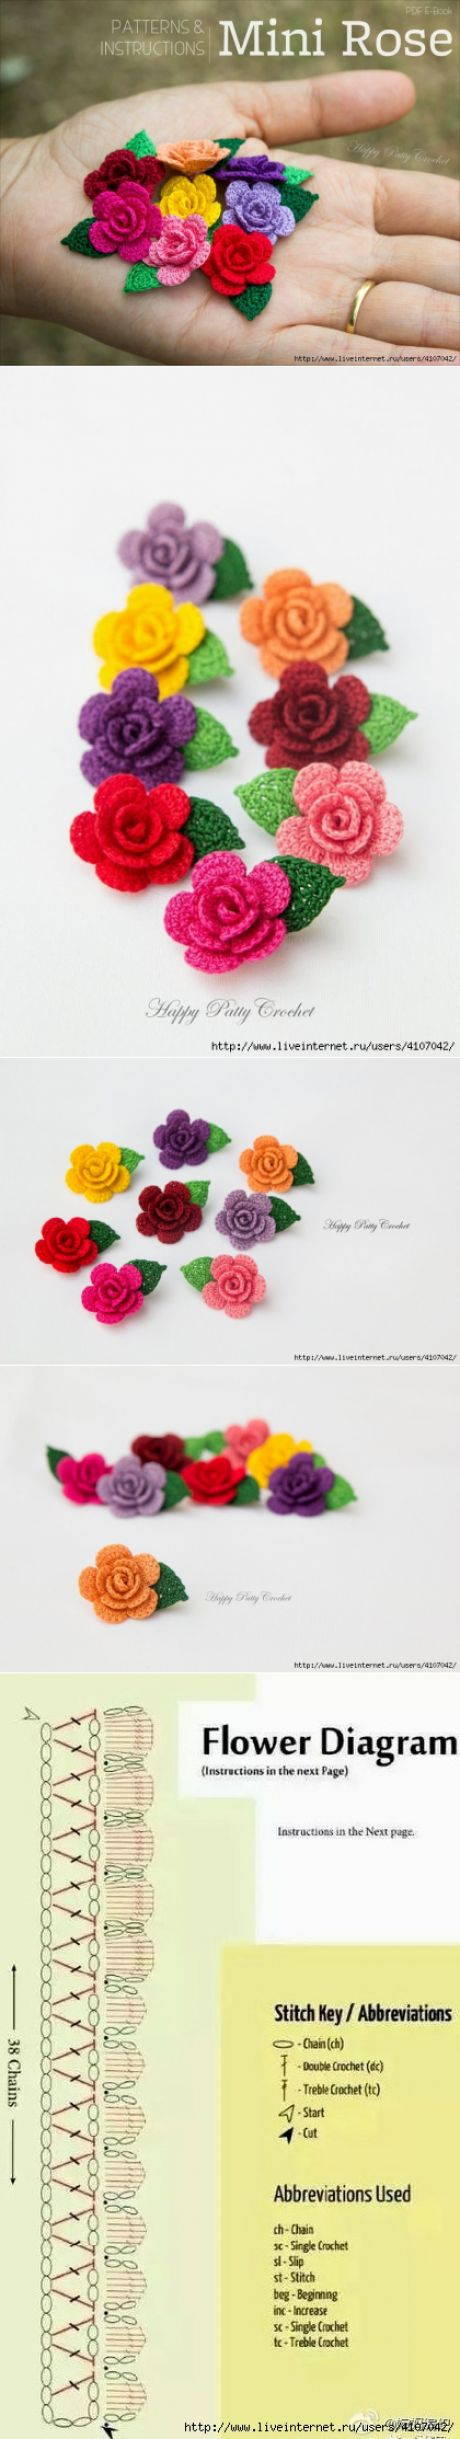 Small roses with chart.